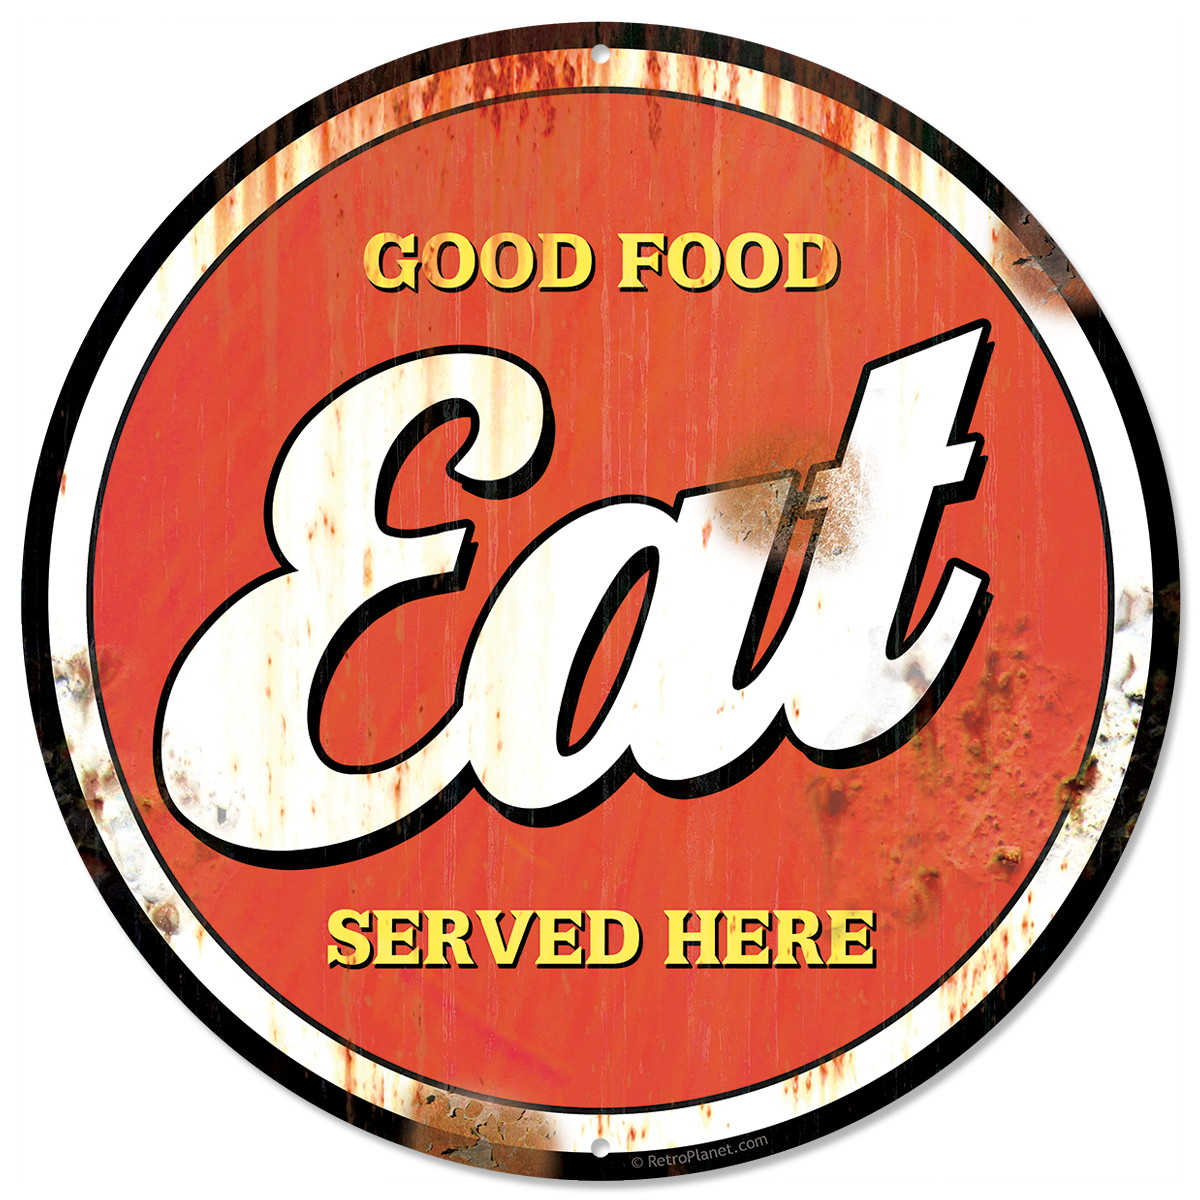 Eat Good Food Here Distressed Metal Sign Vintage Style